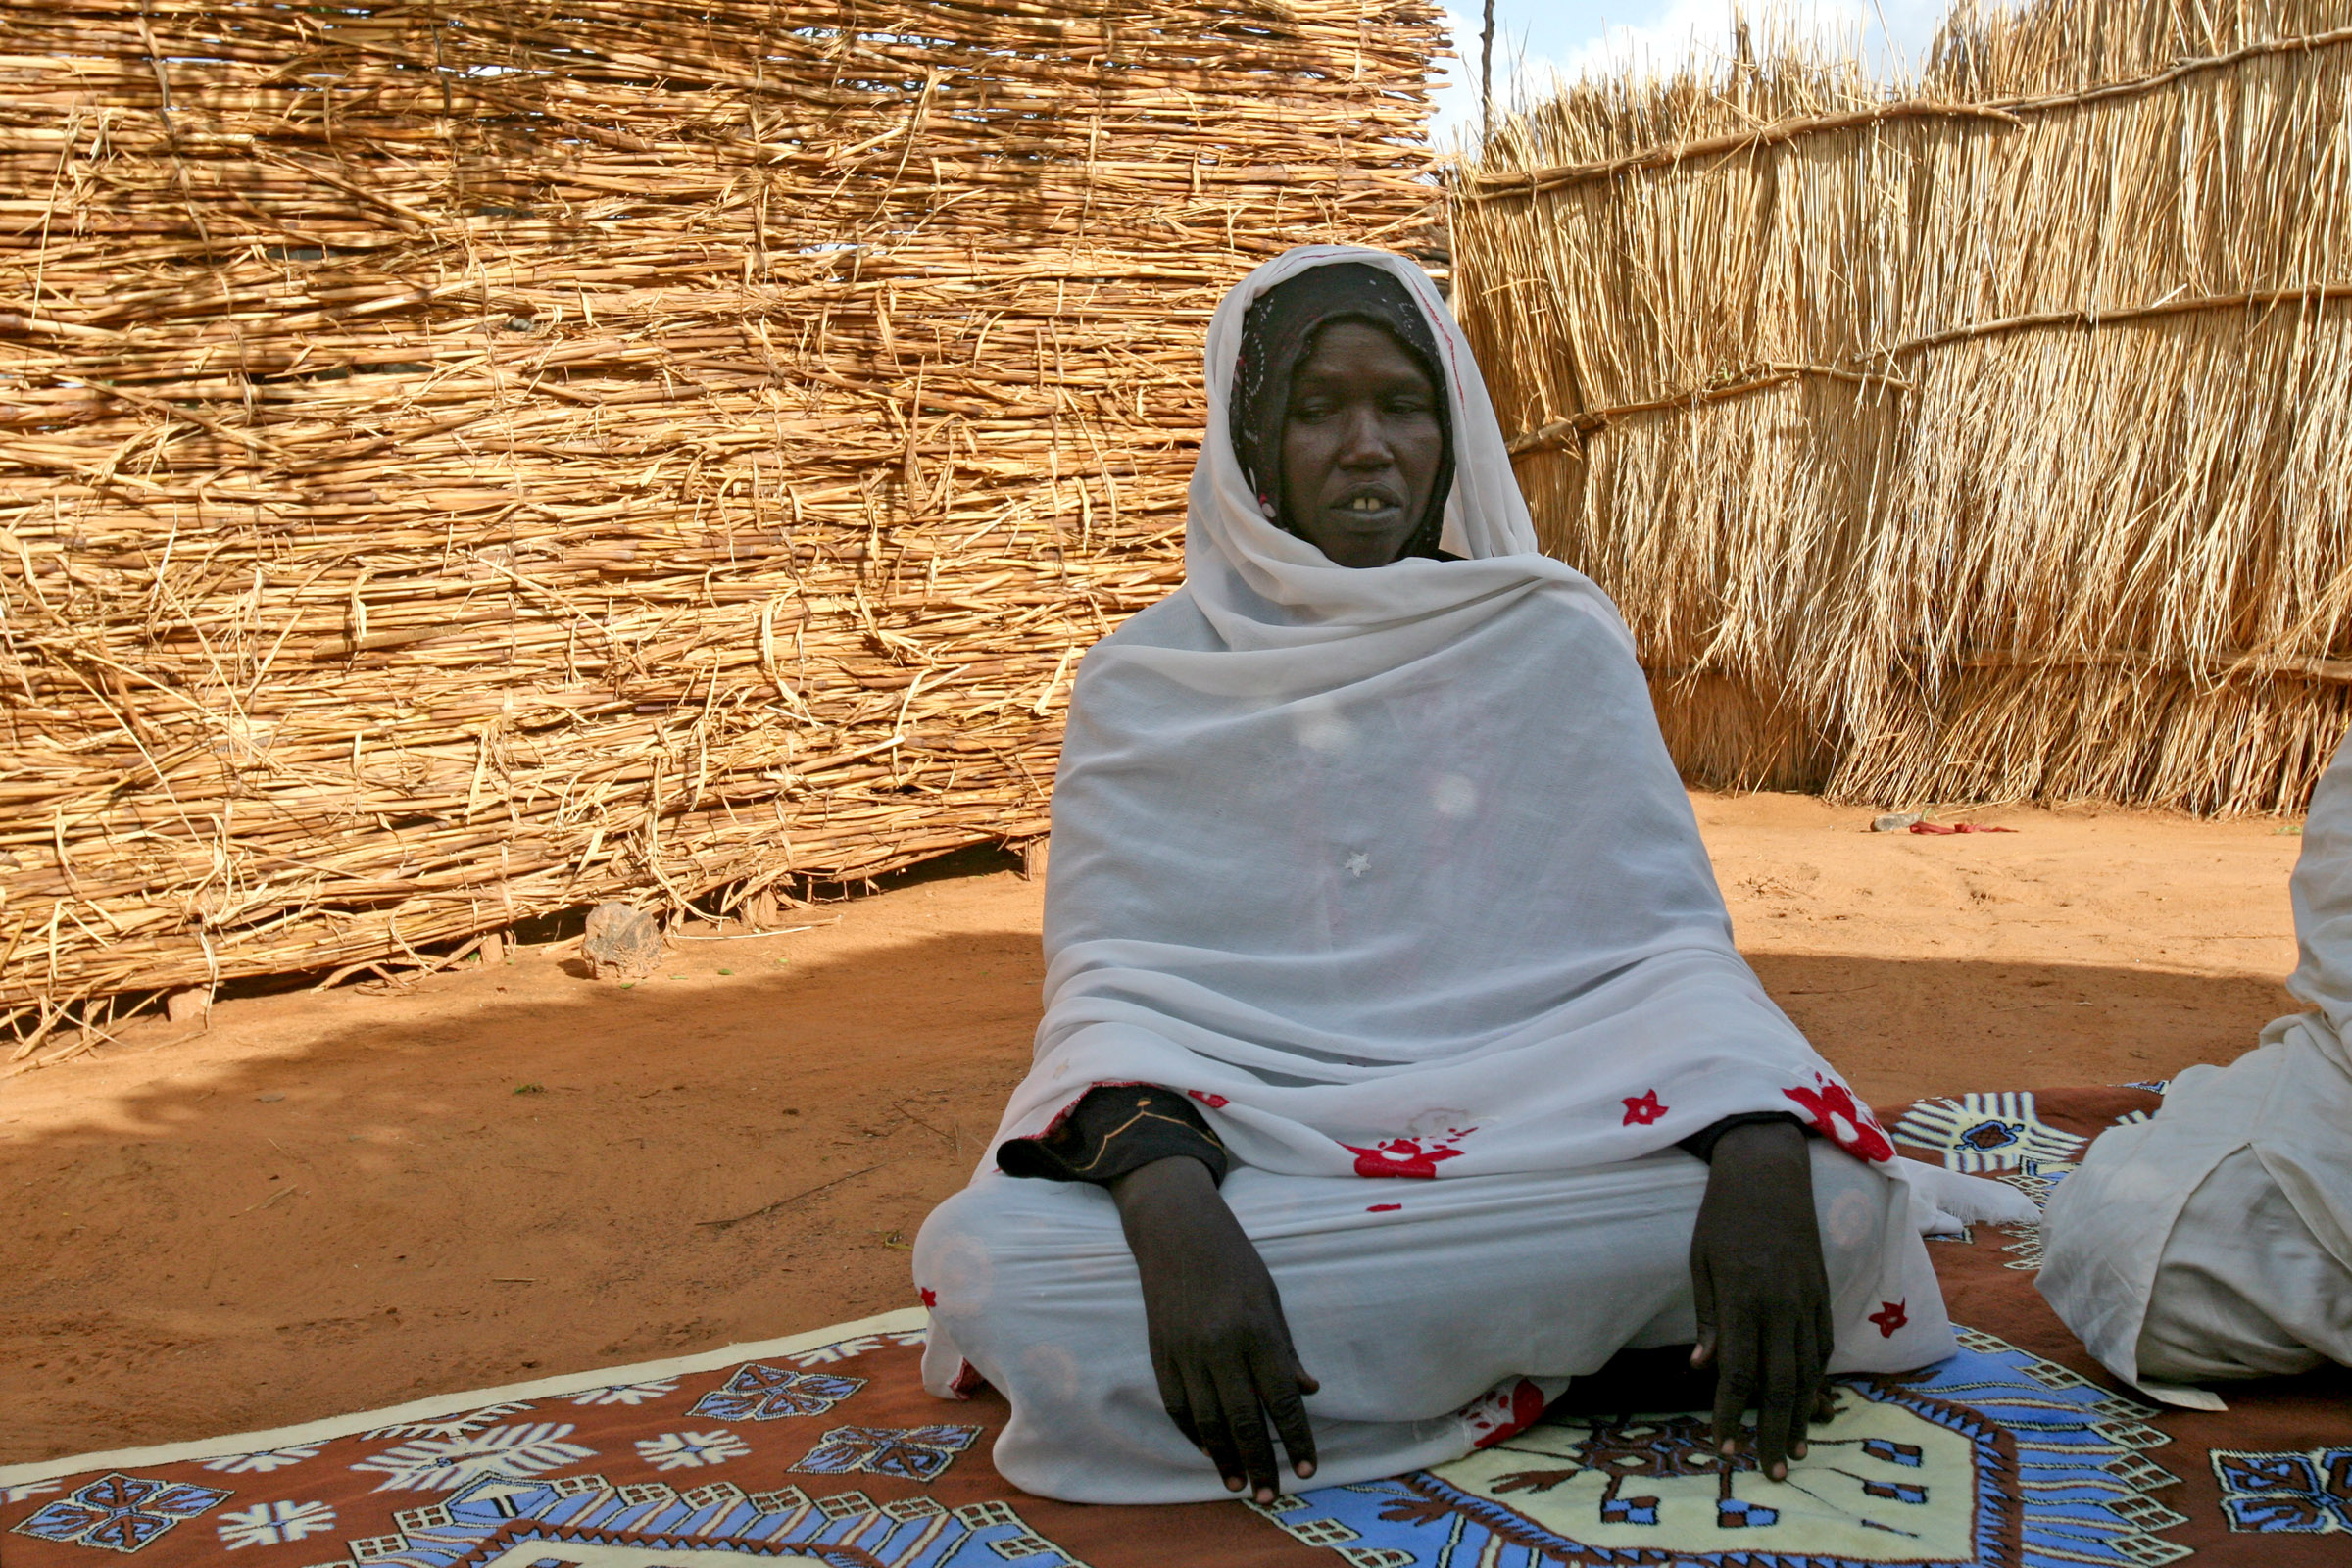 Some of the Sudanese refugees in eastern Chad have been there for close to a decade after fleeing violence in Darfur